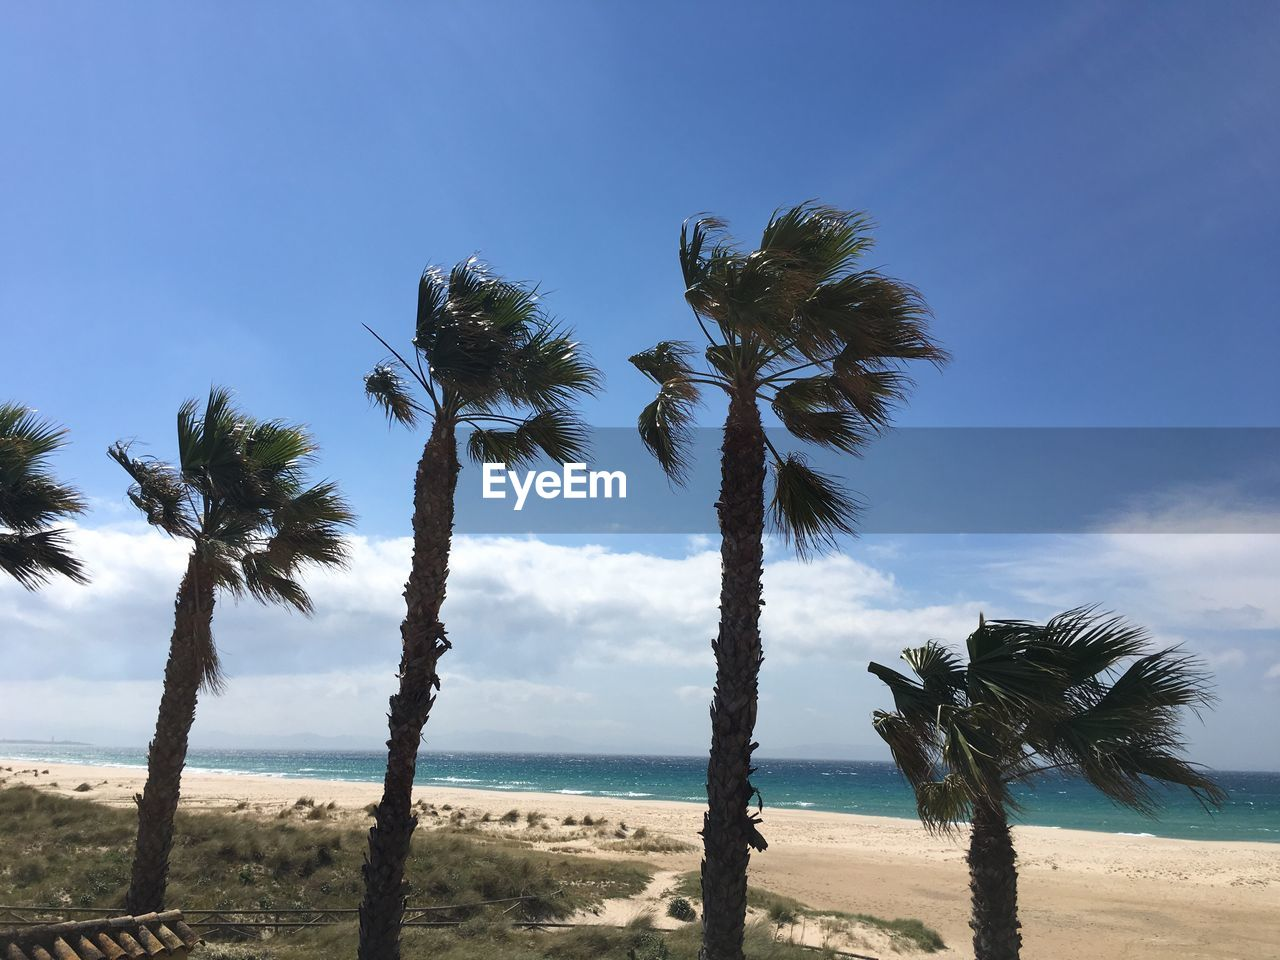 palm tree, beach, tree, sea, nature, beauty in nature, scenics, tranquil scene, tranquility, tree trunk, sand, sky, horizon over water, growth, outdoors, water, day, no people, landscape